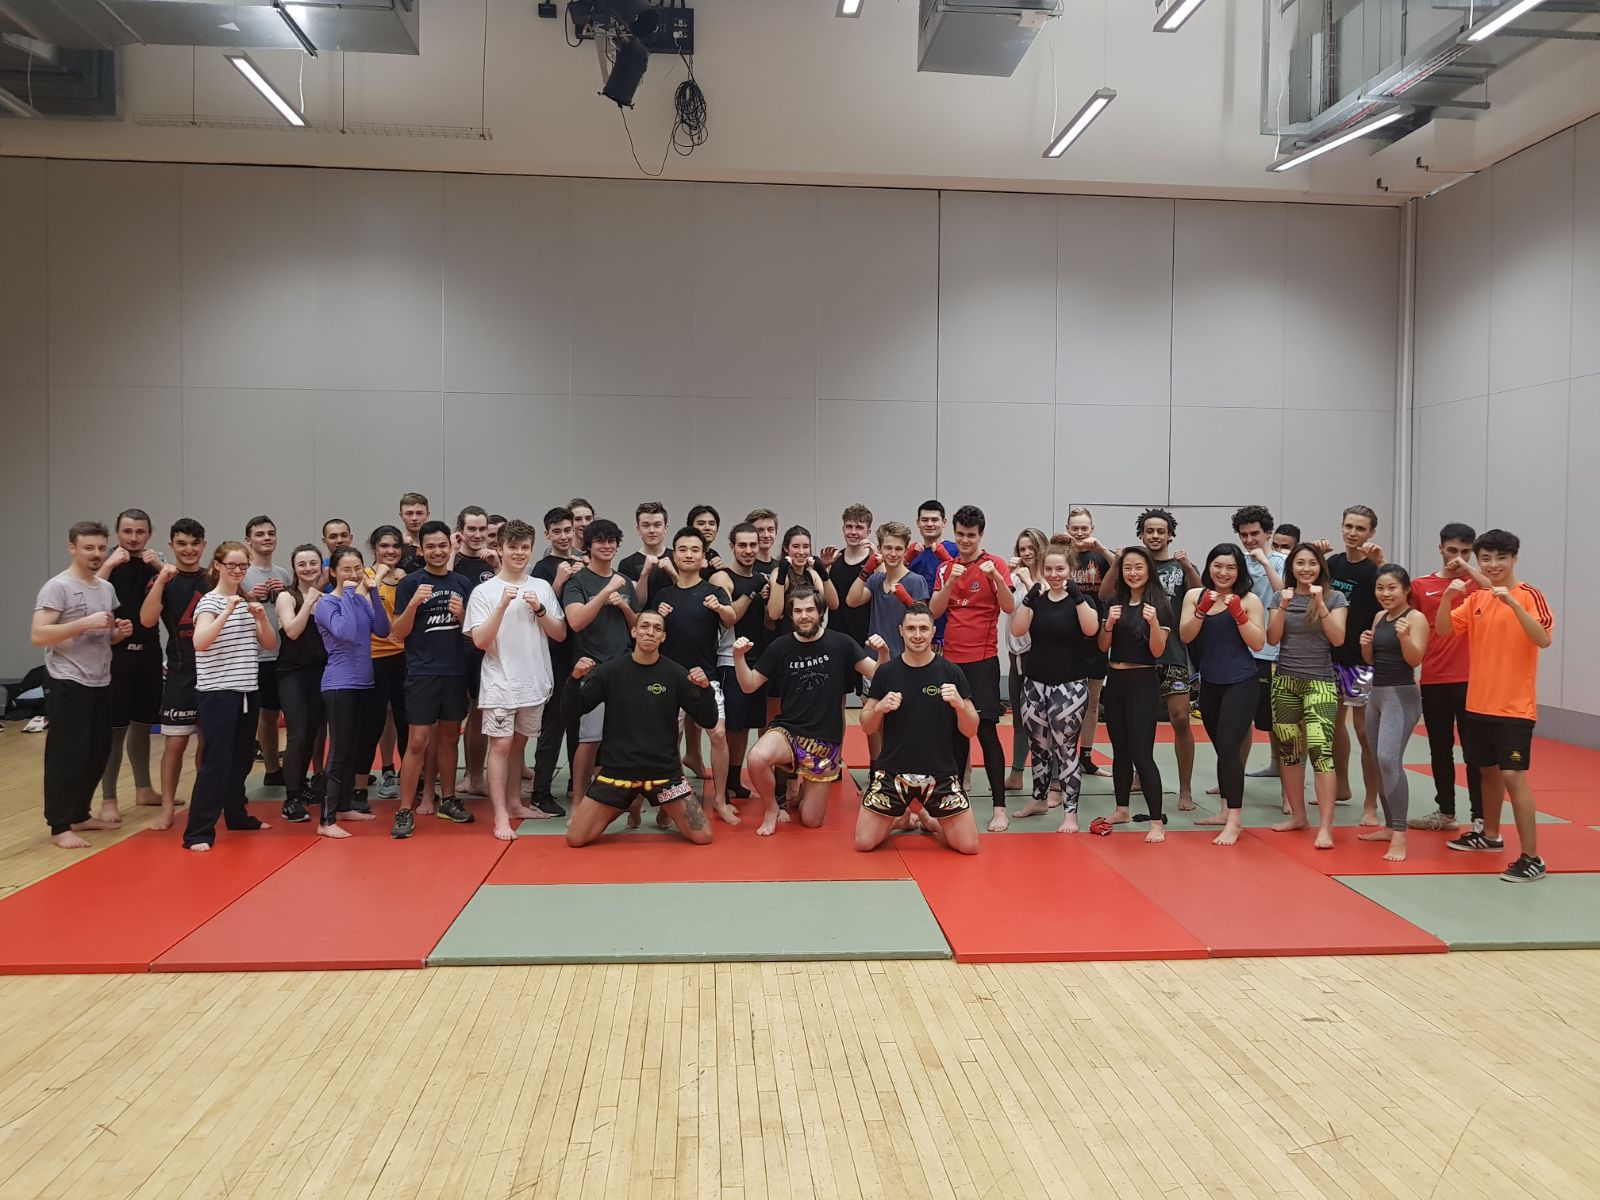 Personal Combat Training offers Muay Thai and kickboxing training at University of Bristol Muay Thai society